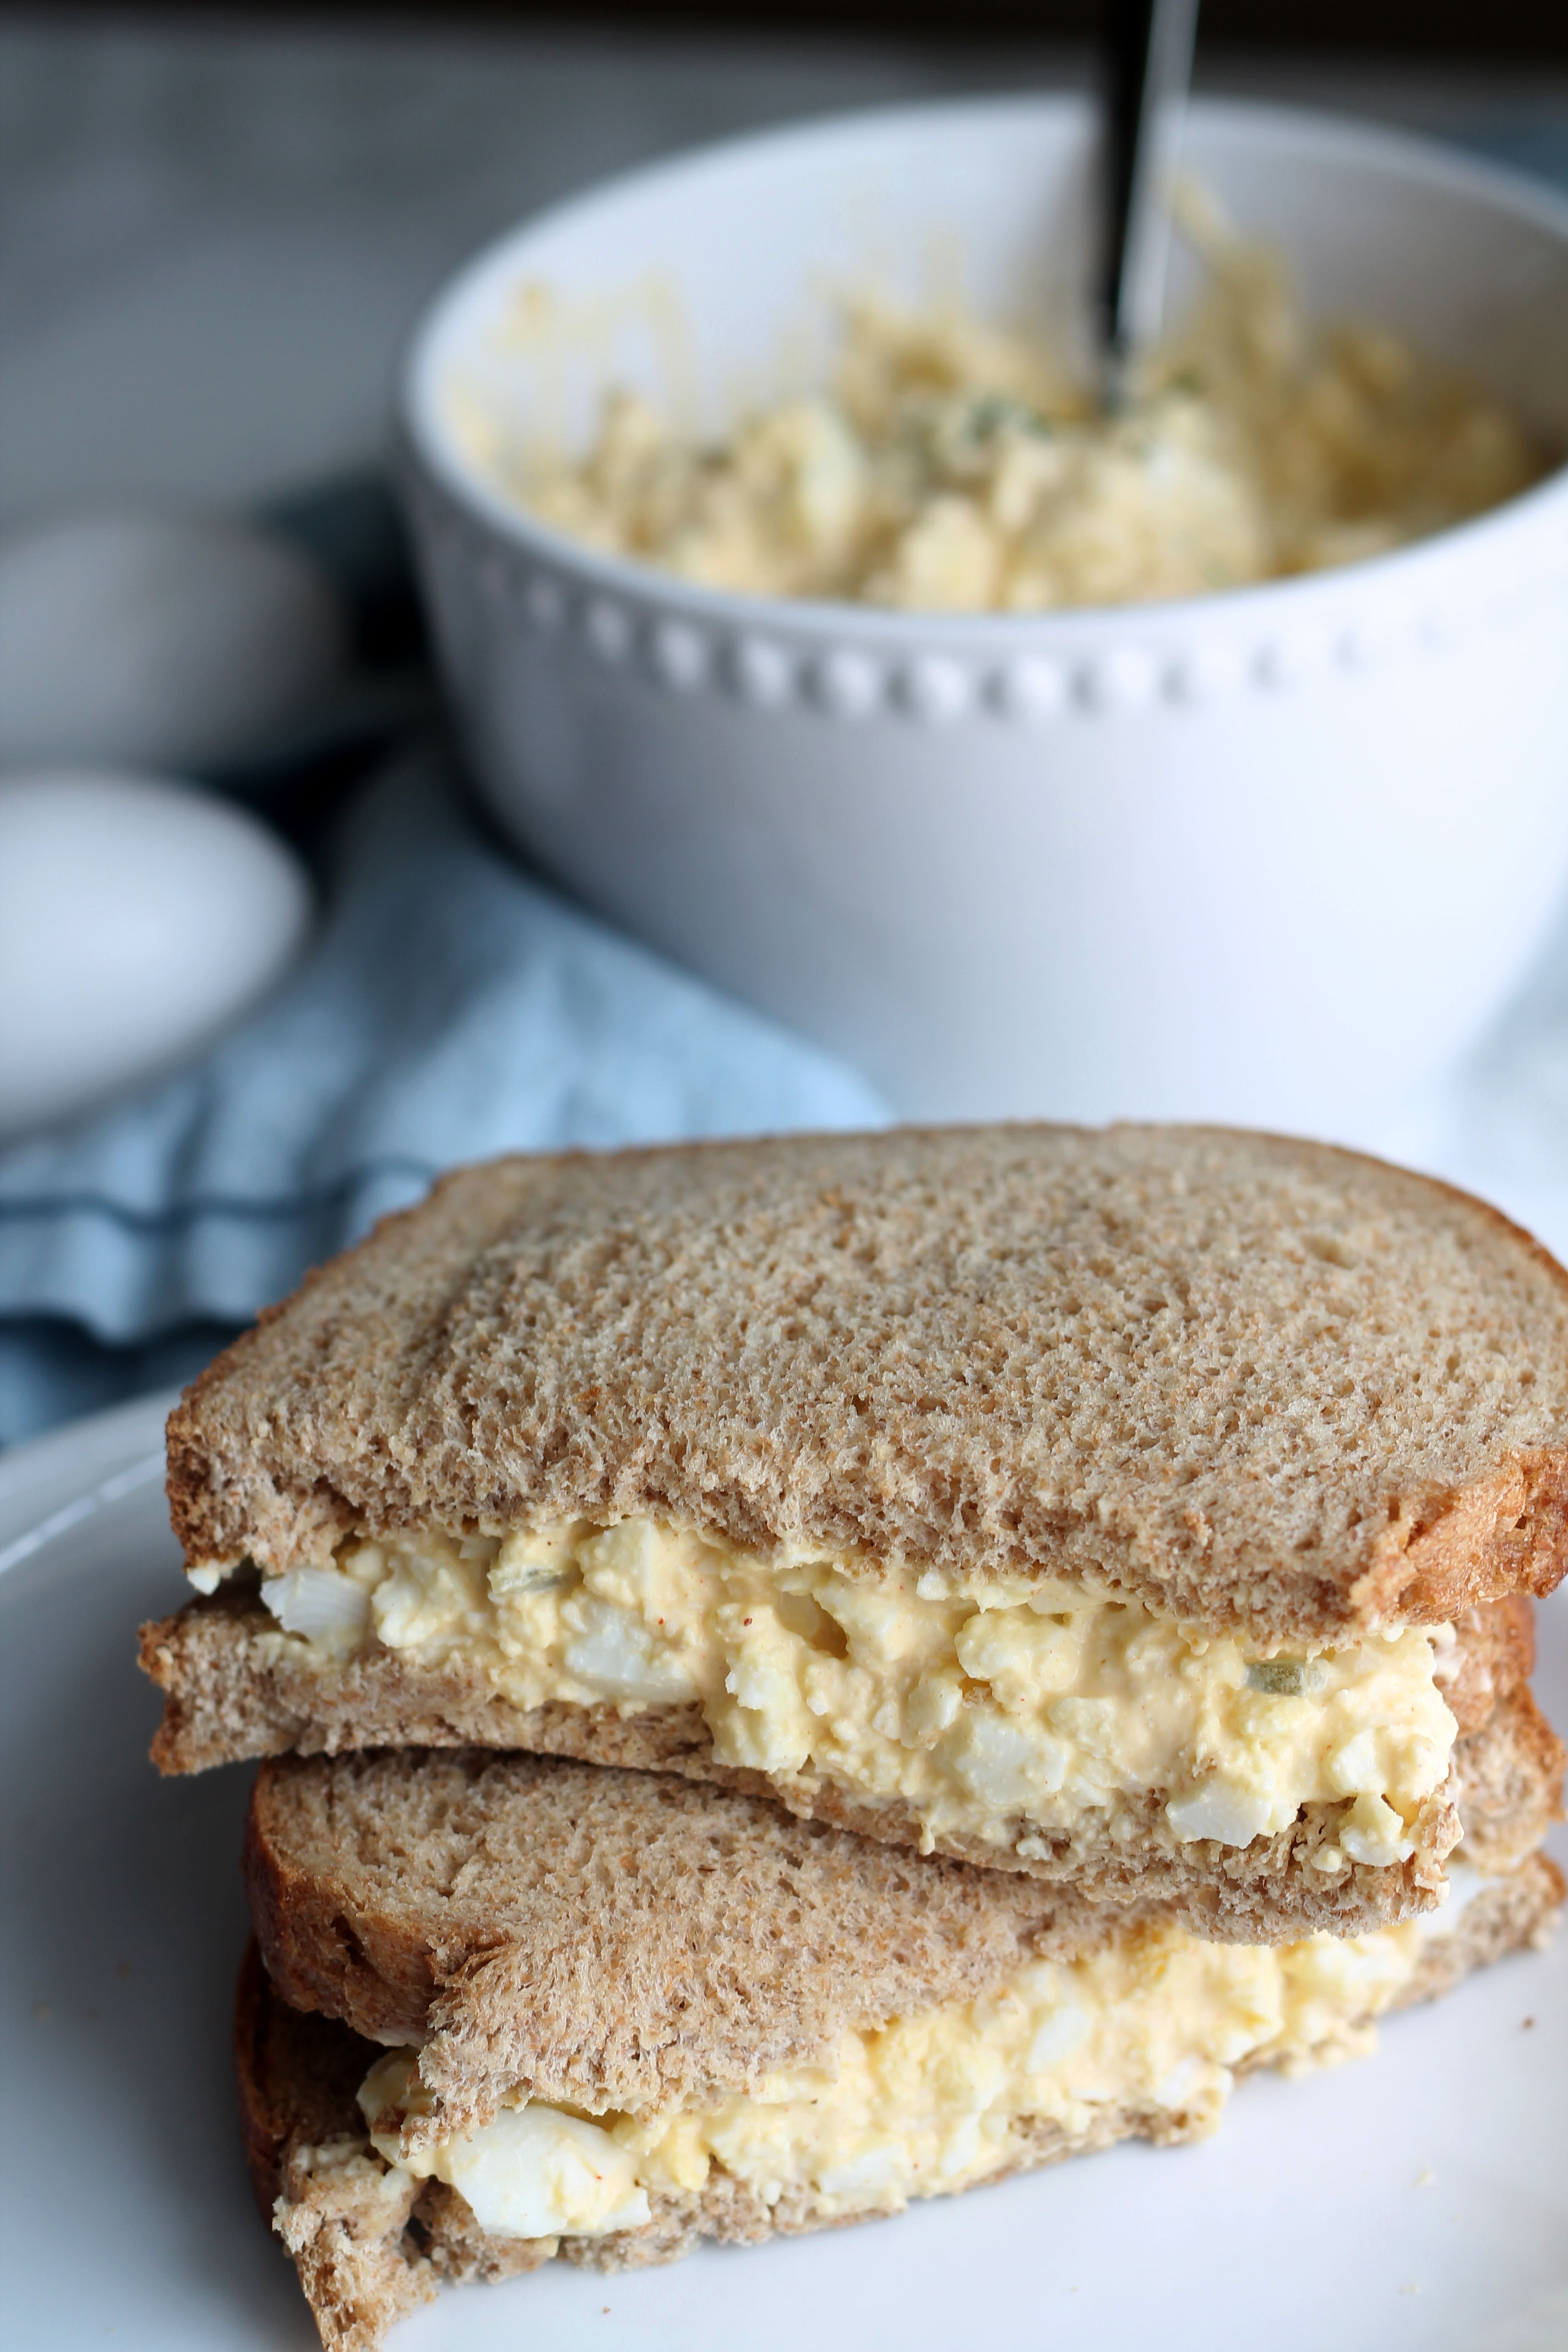 This egg salad is creamy, easy and delicious